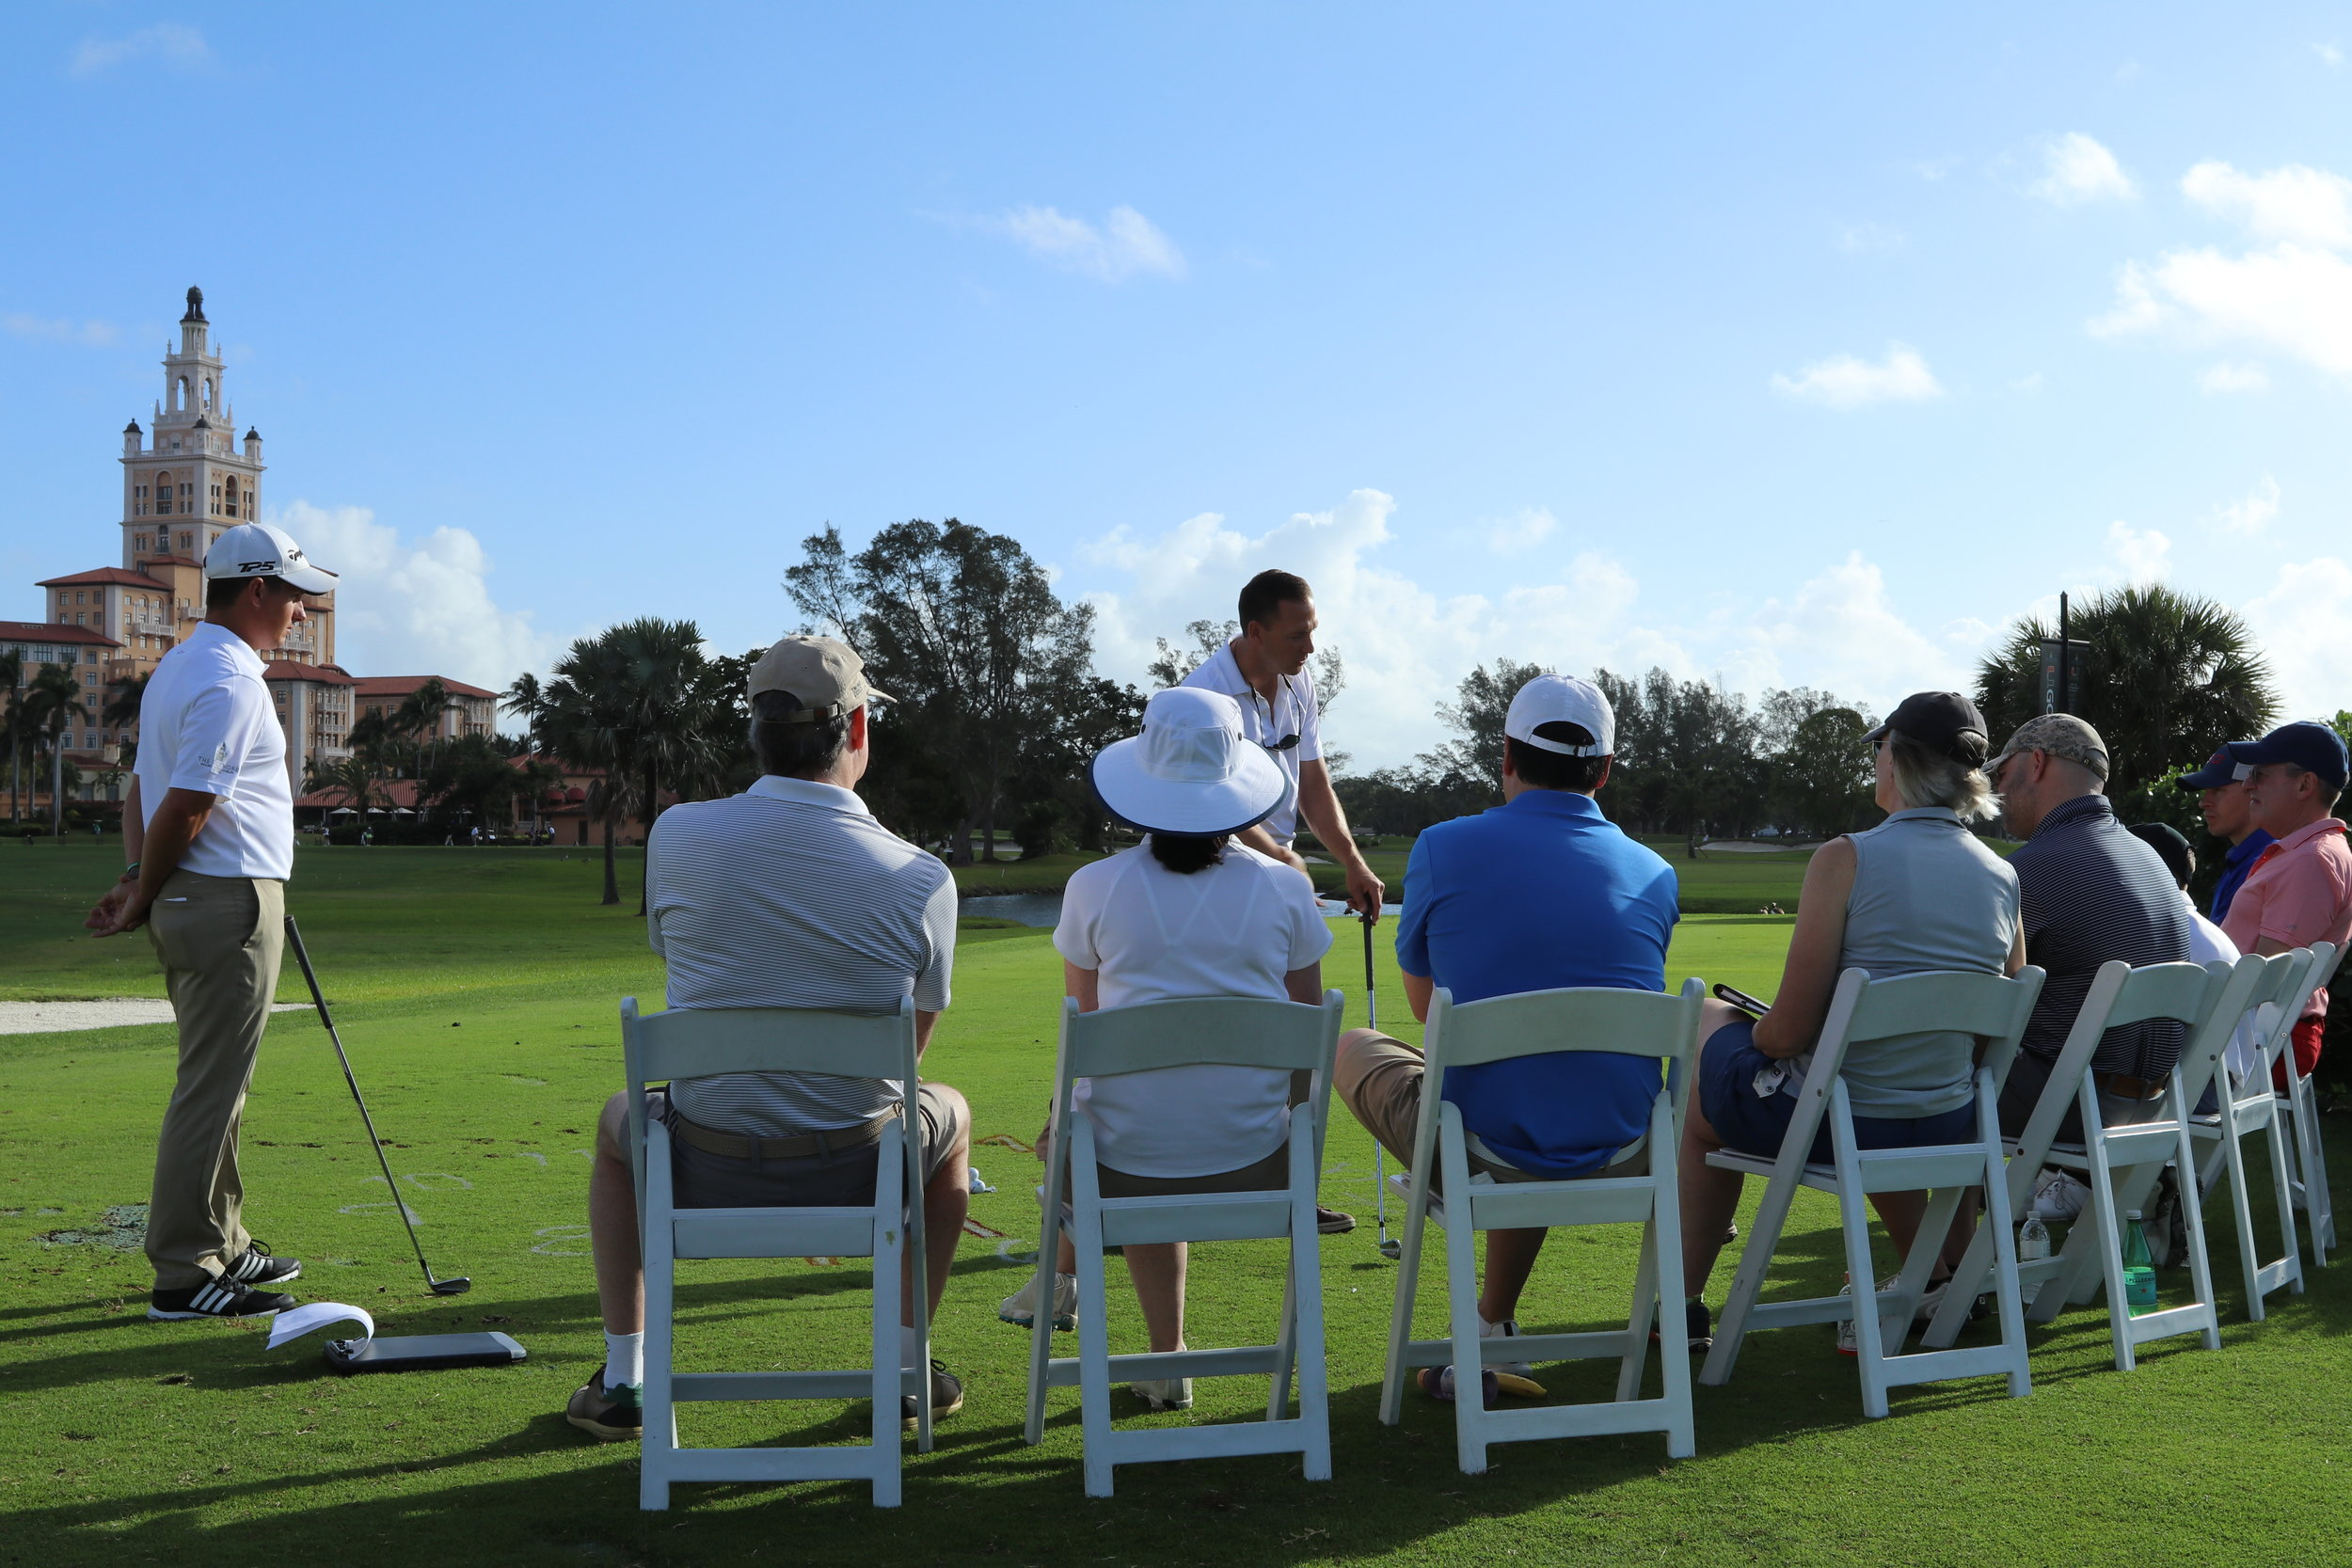 Tune up Clinic - Wednesday's 11am-12pm; every week$40 per personThis clinic is for all levels of golfers who need a quick tune up before their next round.